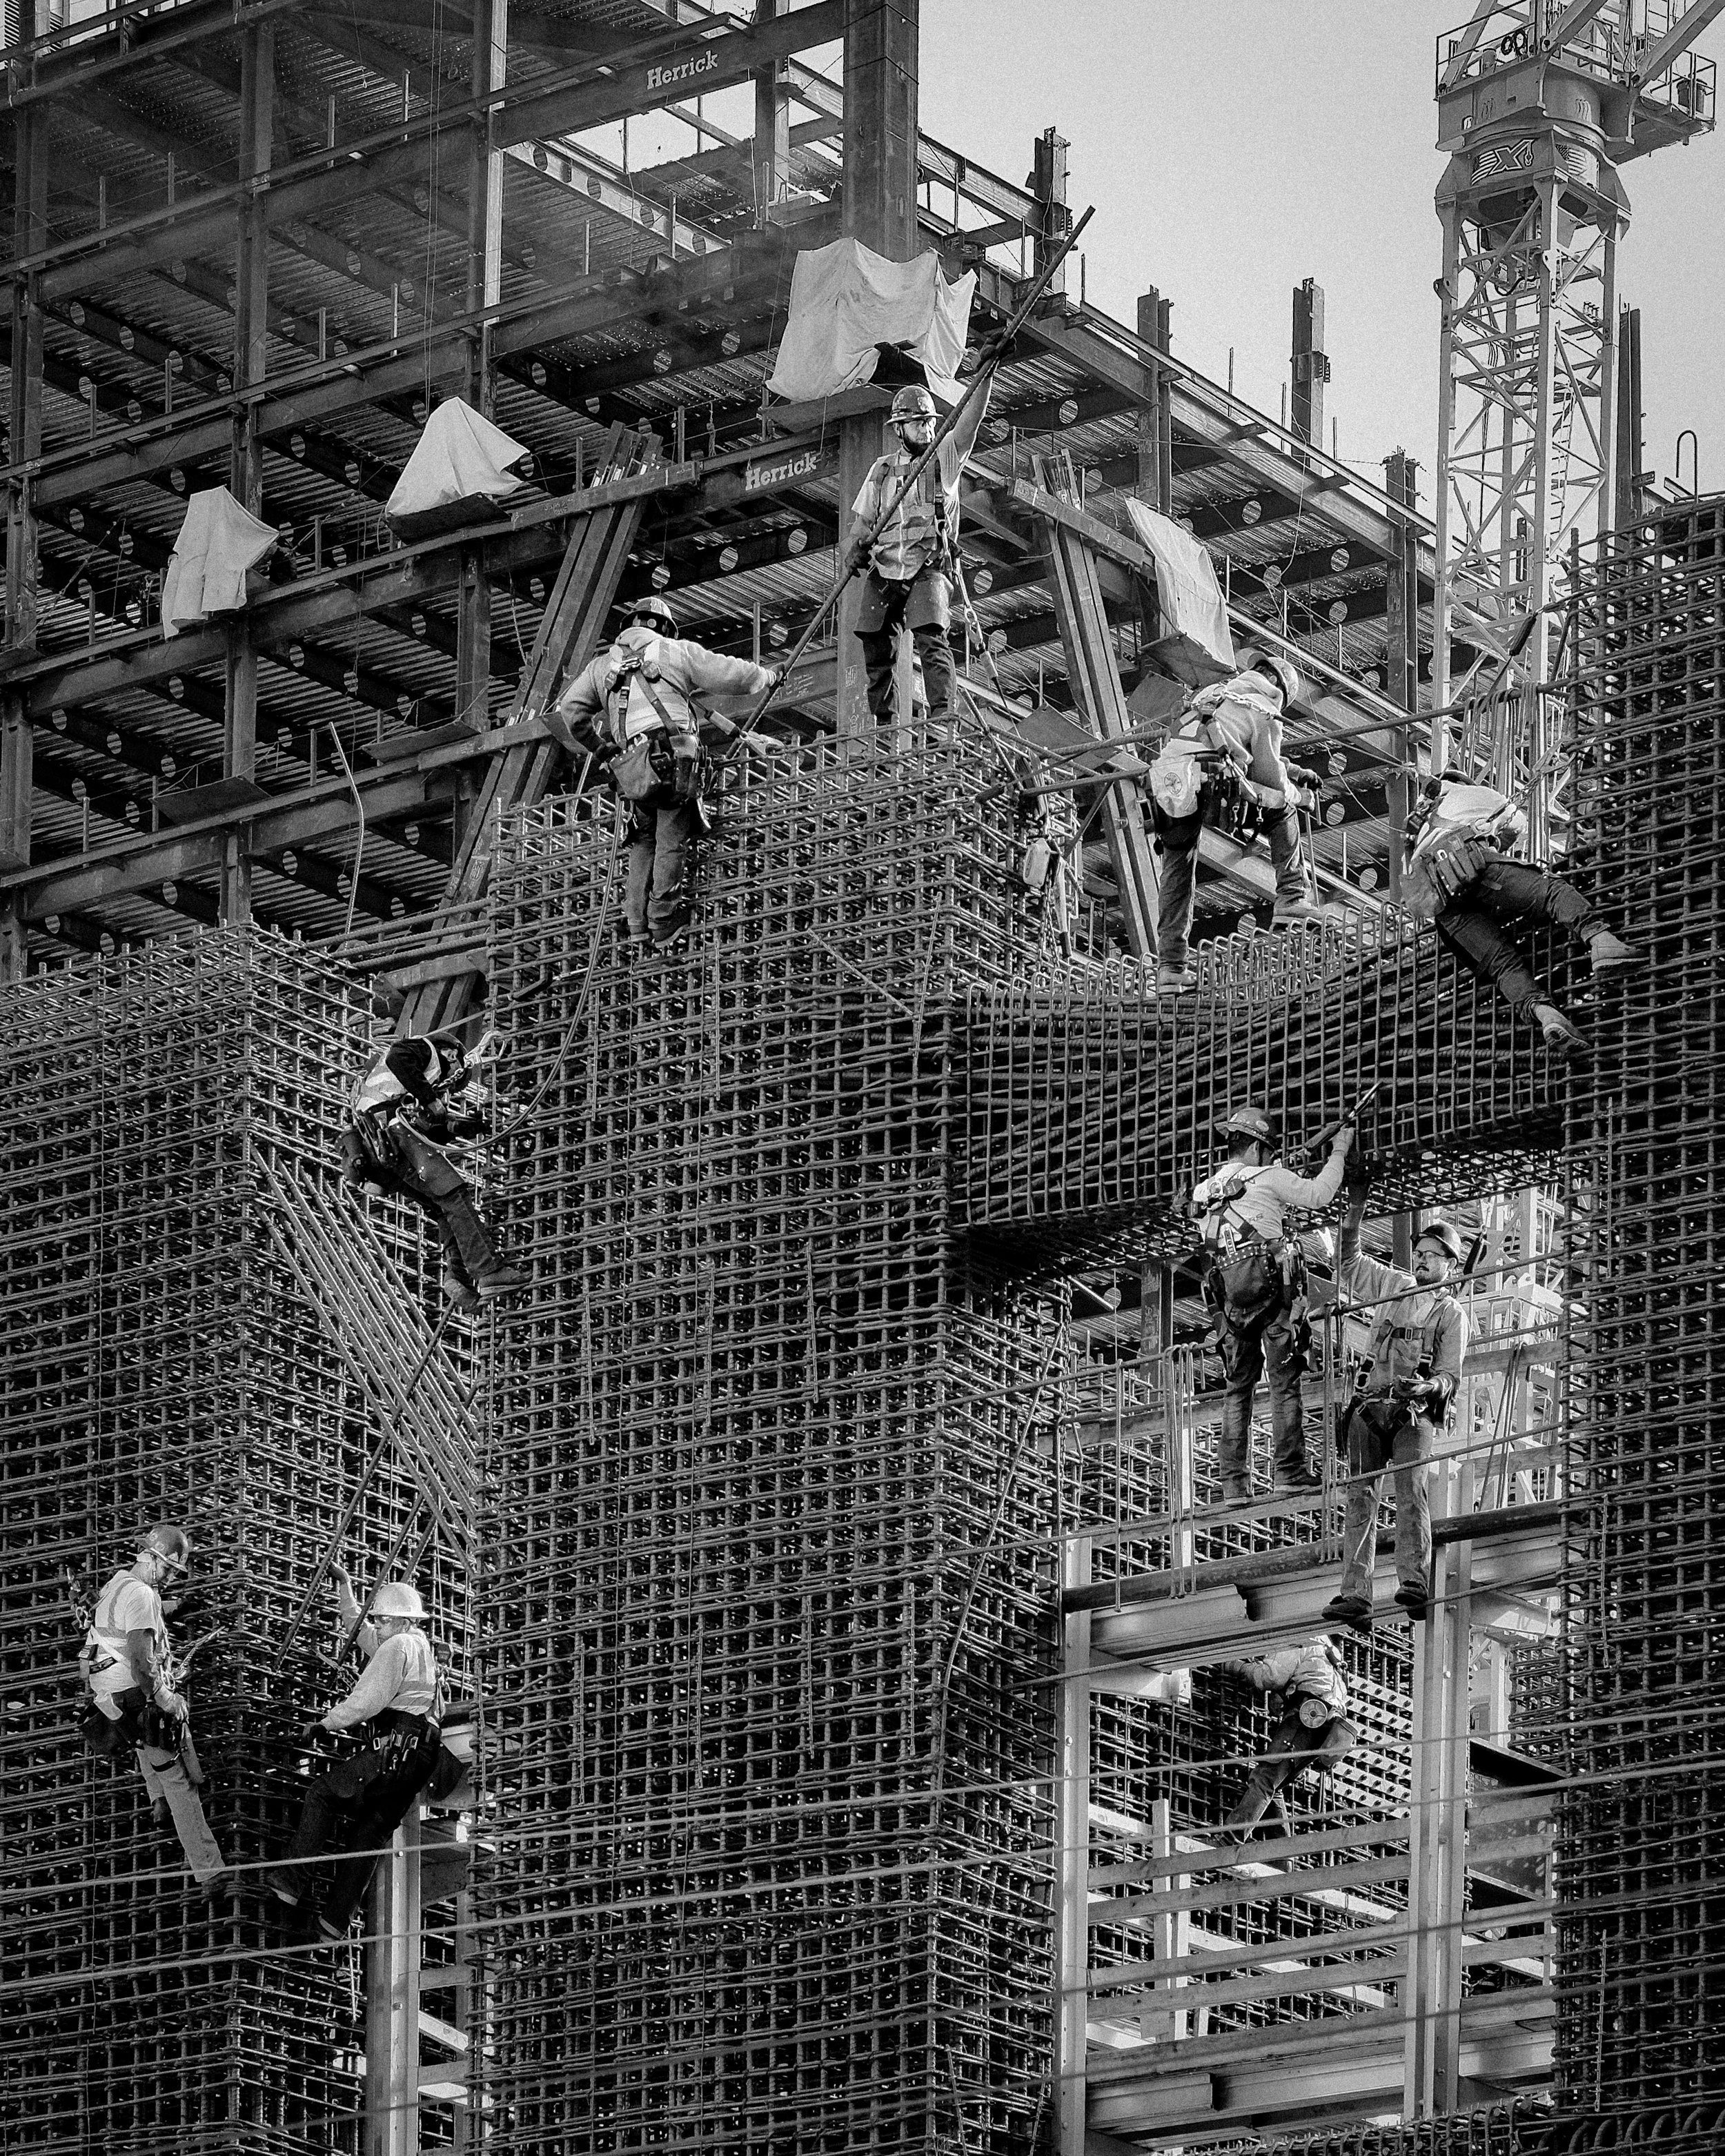 (126) salesforce_building_ironworkers (2).jpg